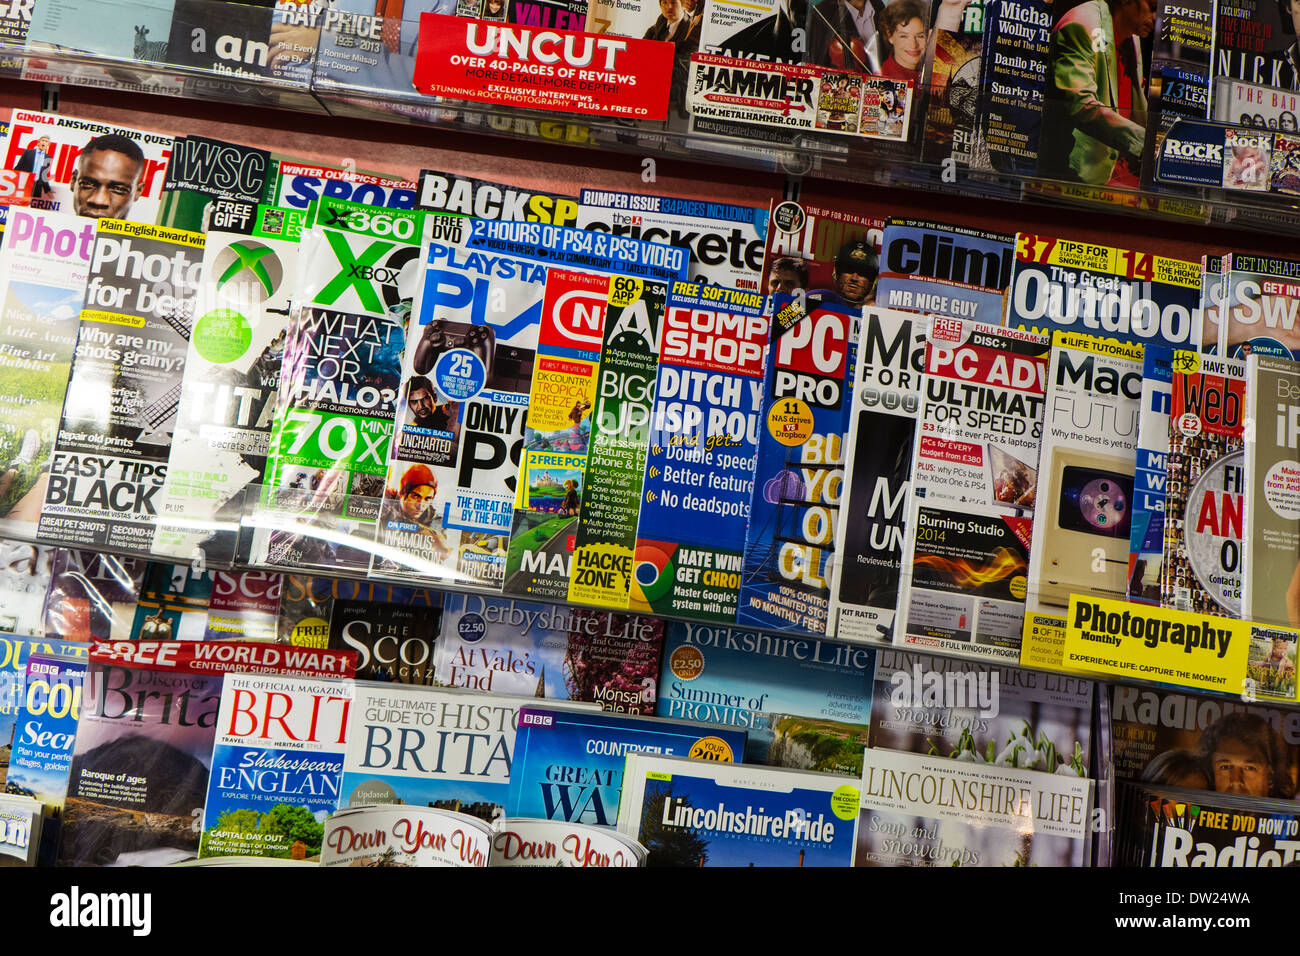 Magazine display stand in stationary shop store computer games mags mag selling - Stock Image